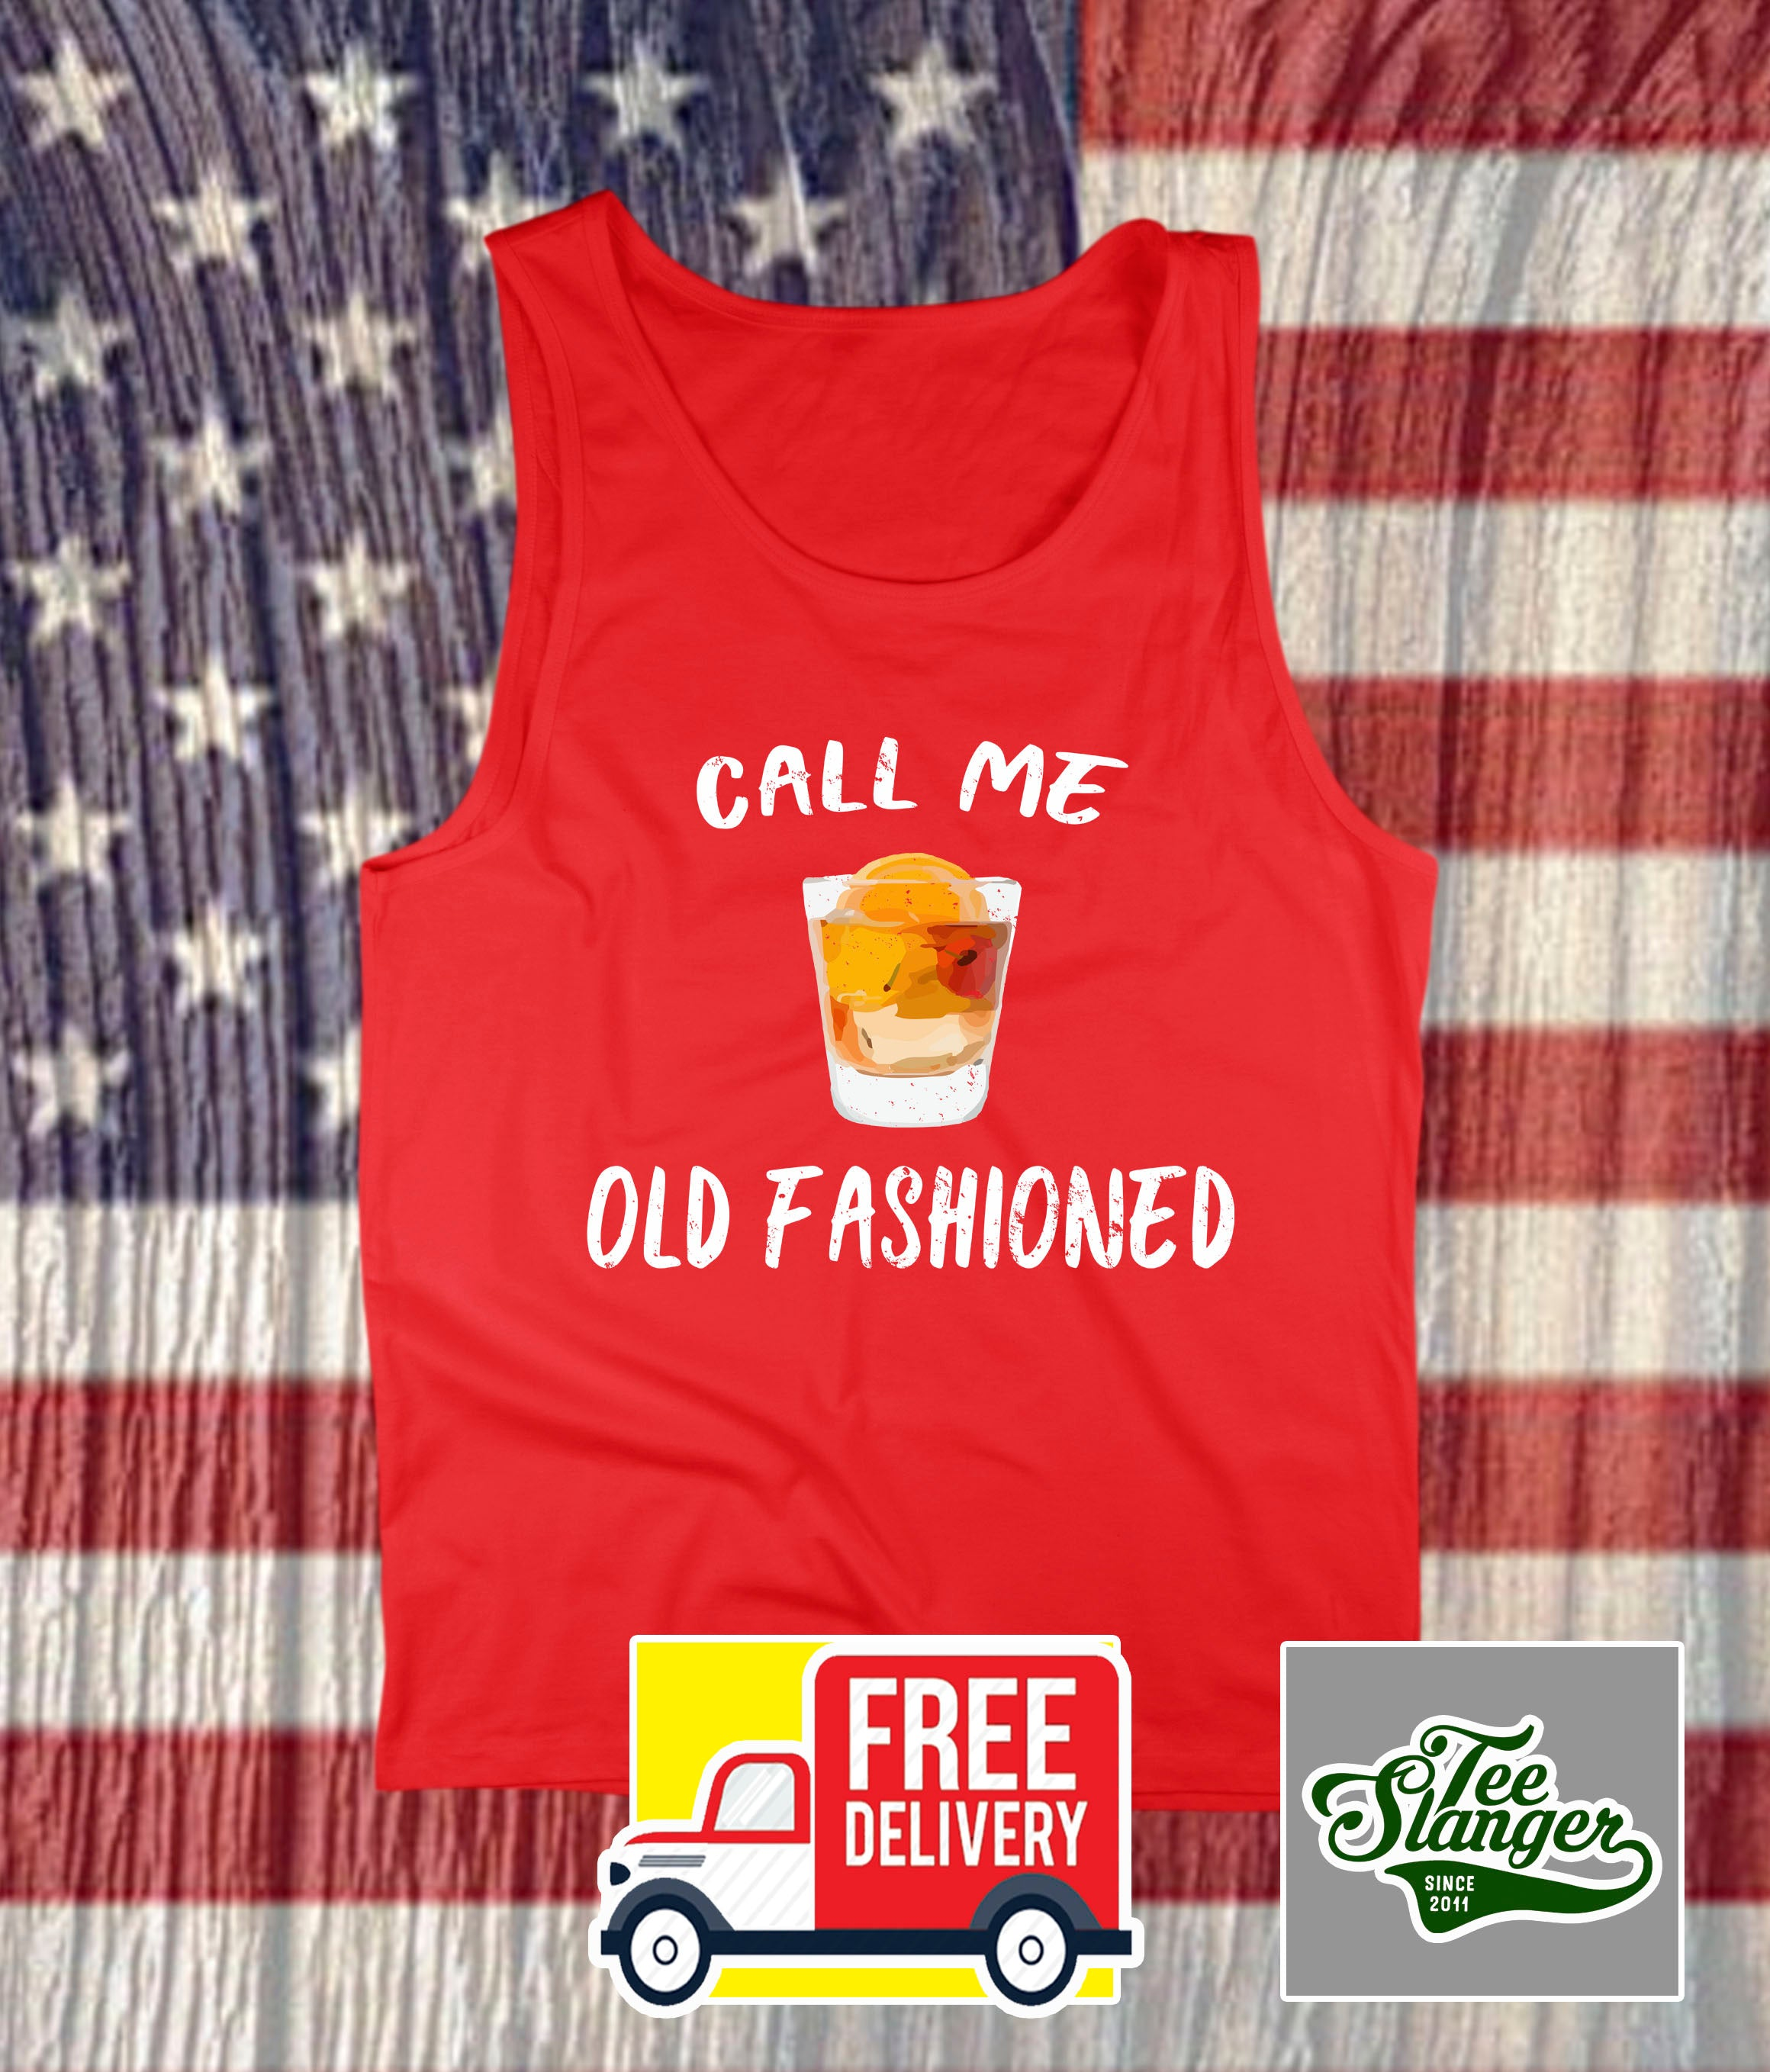 CALL ME OLD FASHIONED TANK TOP DRINKING TEE